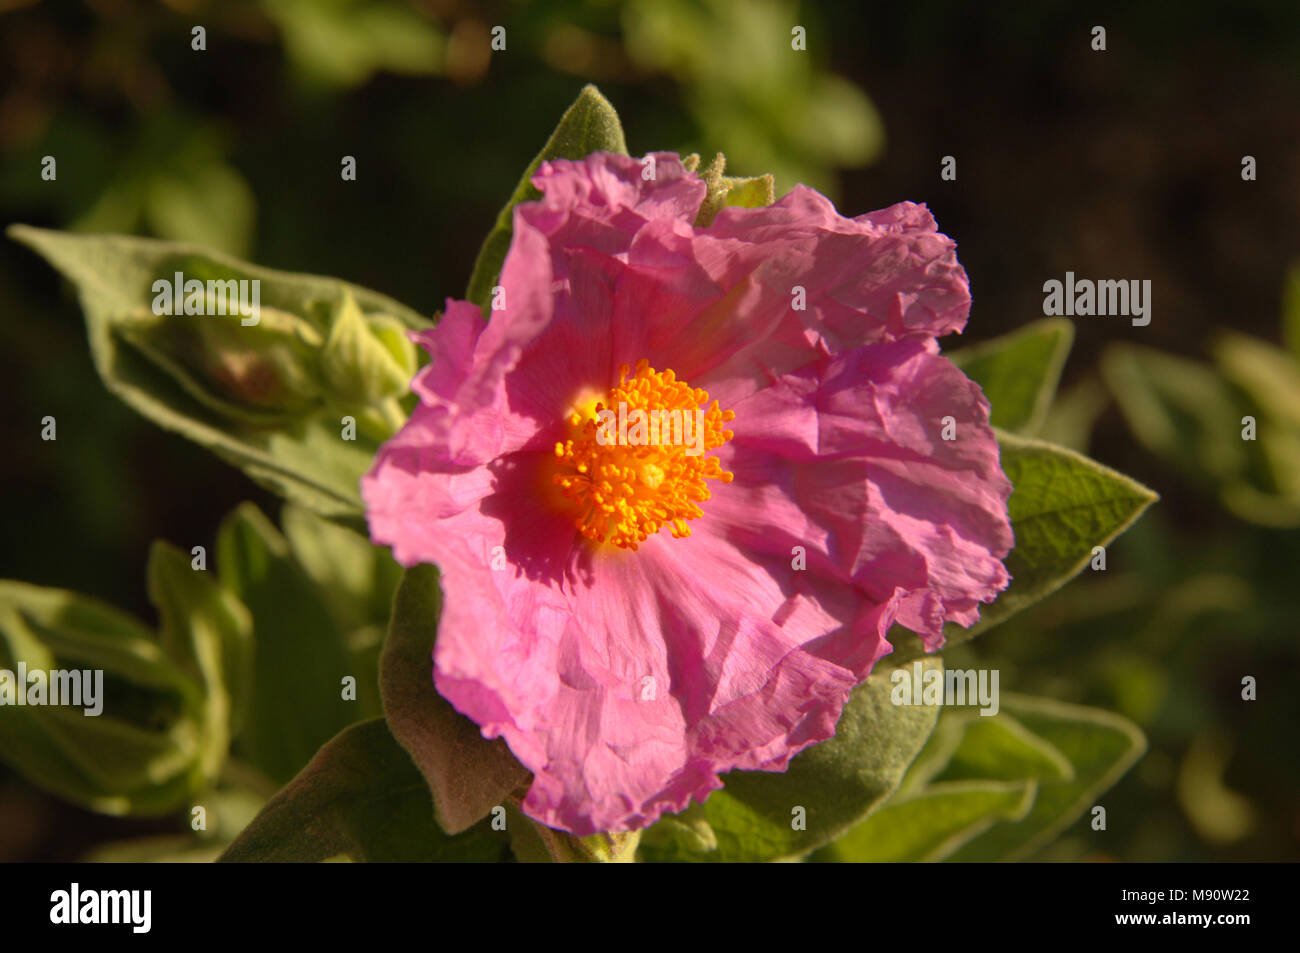 A rock rose with pink crinkly petals and orange stamen, bathed in bright mediterranean sunshine. - Stock Image